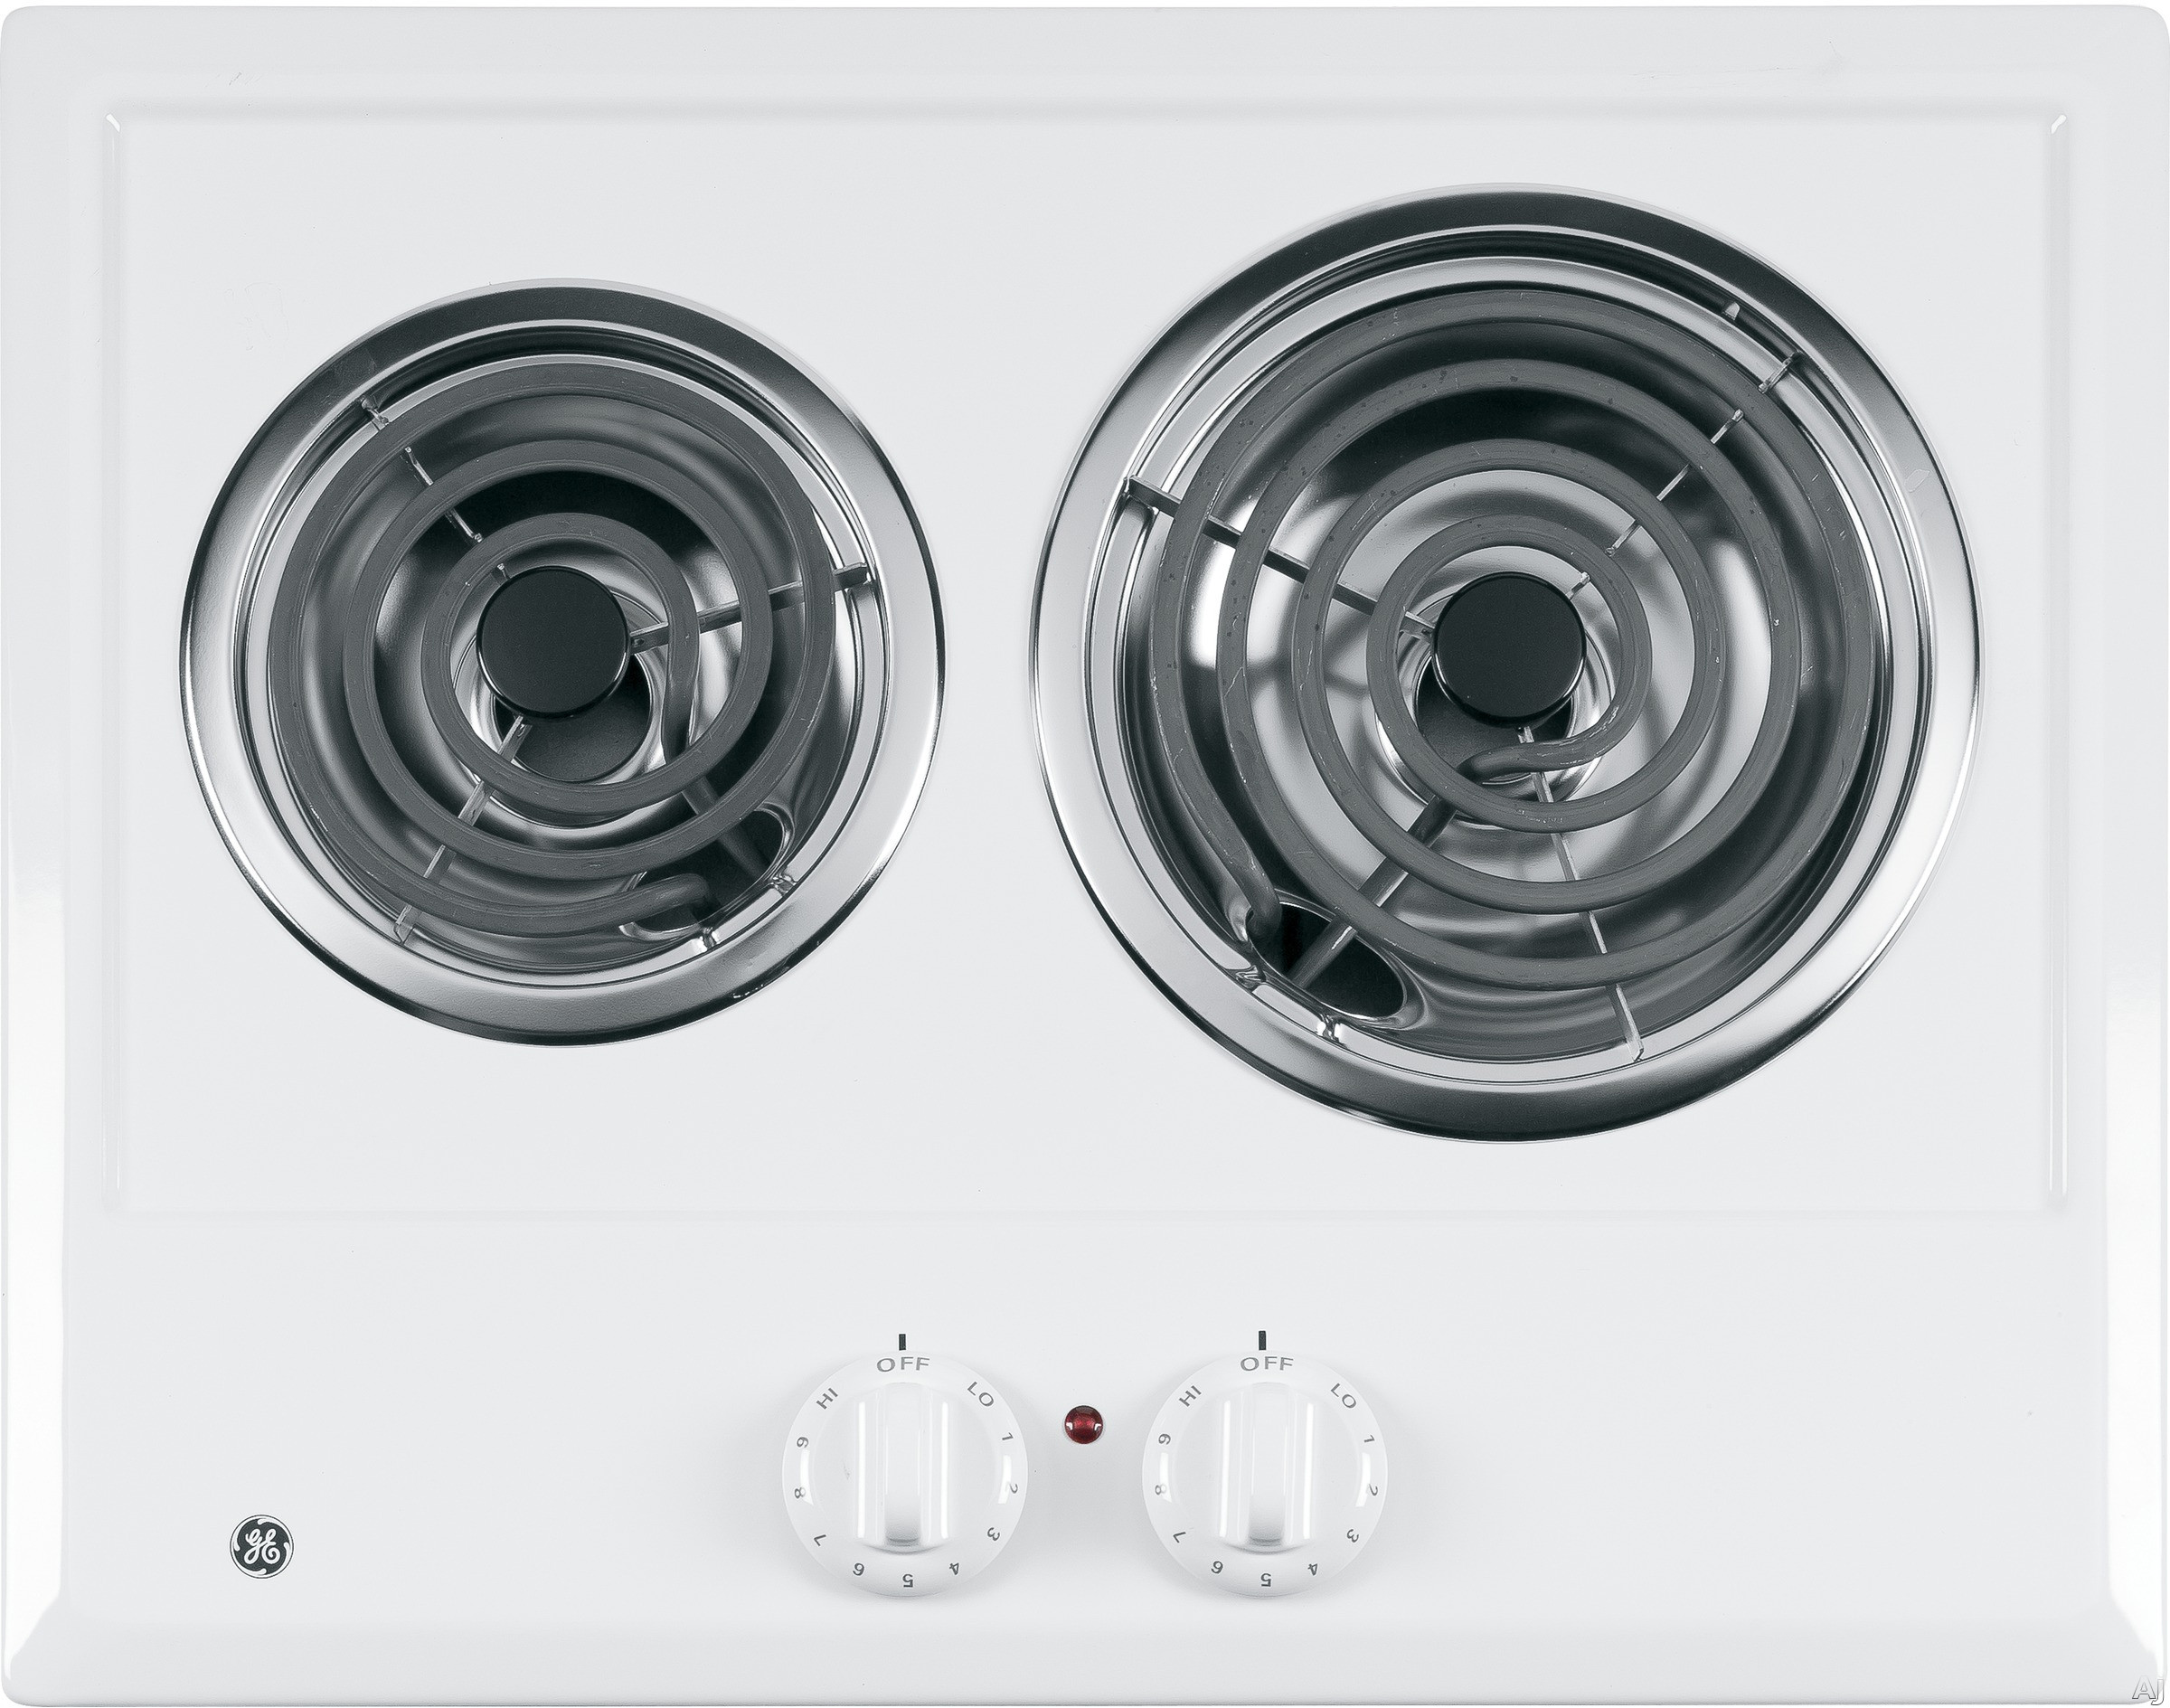 GE JP202DWW 21 Inch Electric Cooktop with 2 Coil Elements, Removable Drip Bowls, Upfront Controls and ADA Compliant: White